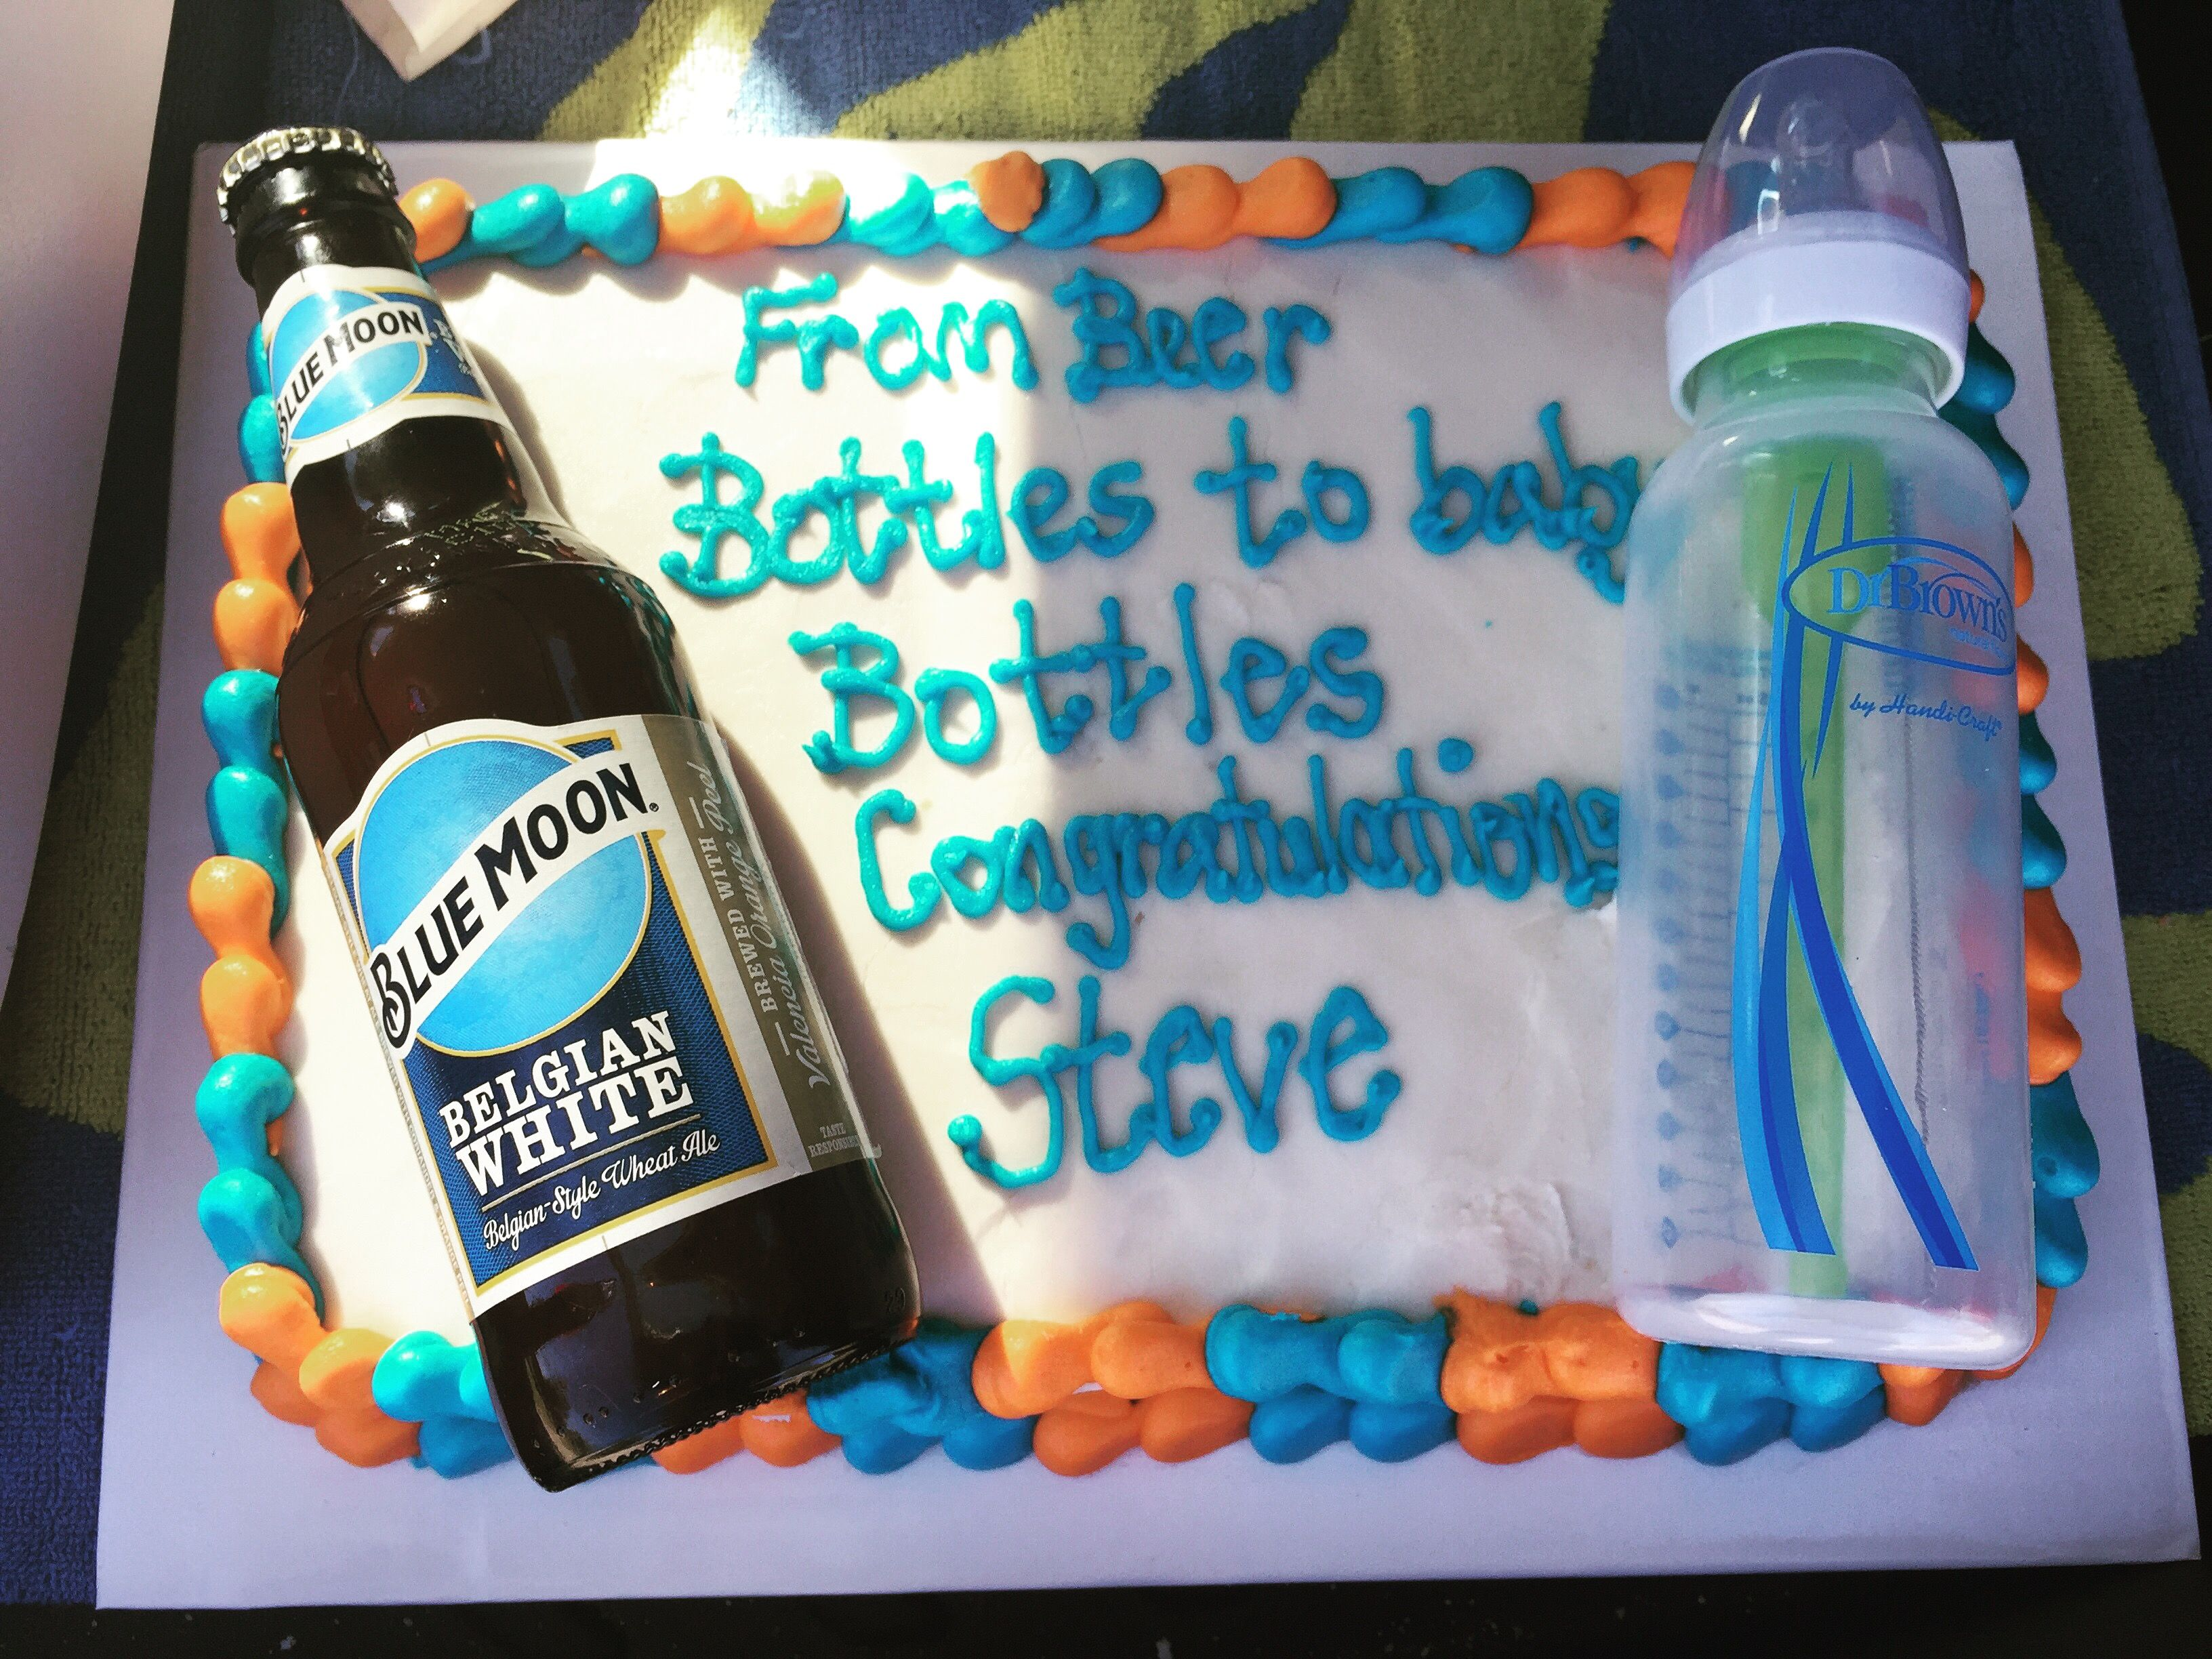 From Beer Bottles To Baby Bottles Cake With Images Bottle Cake